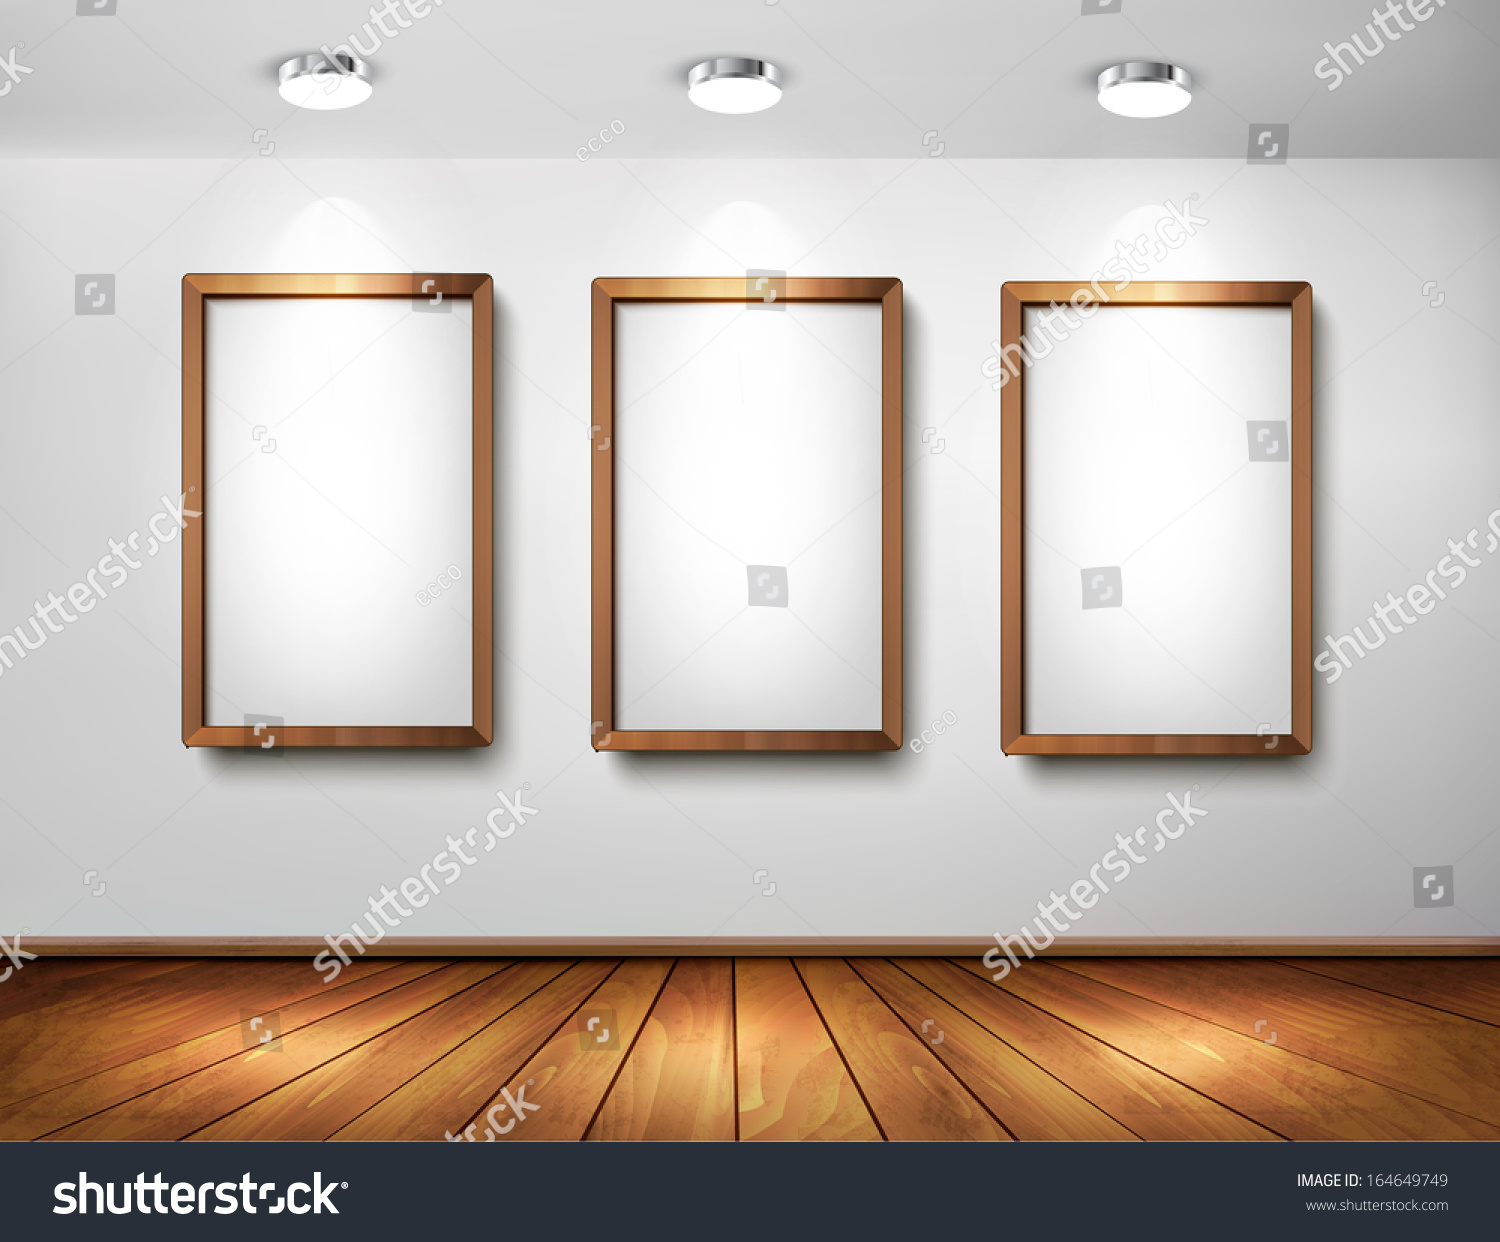 empty wooden frames on wall with spotlights and wooden floor vector illustration